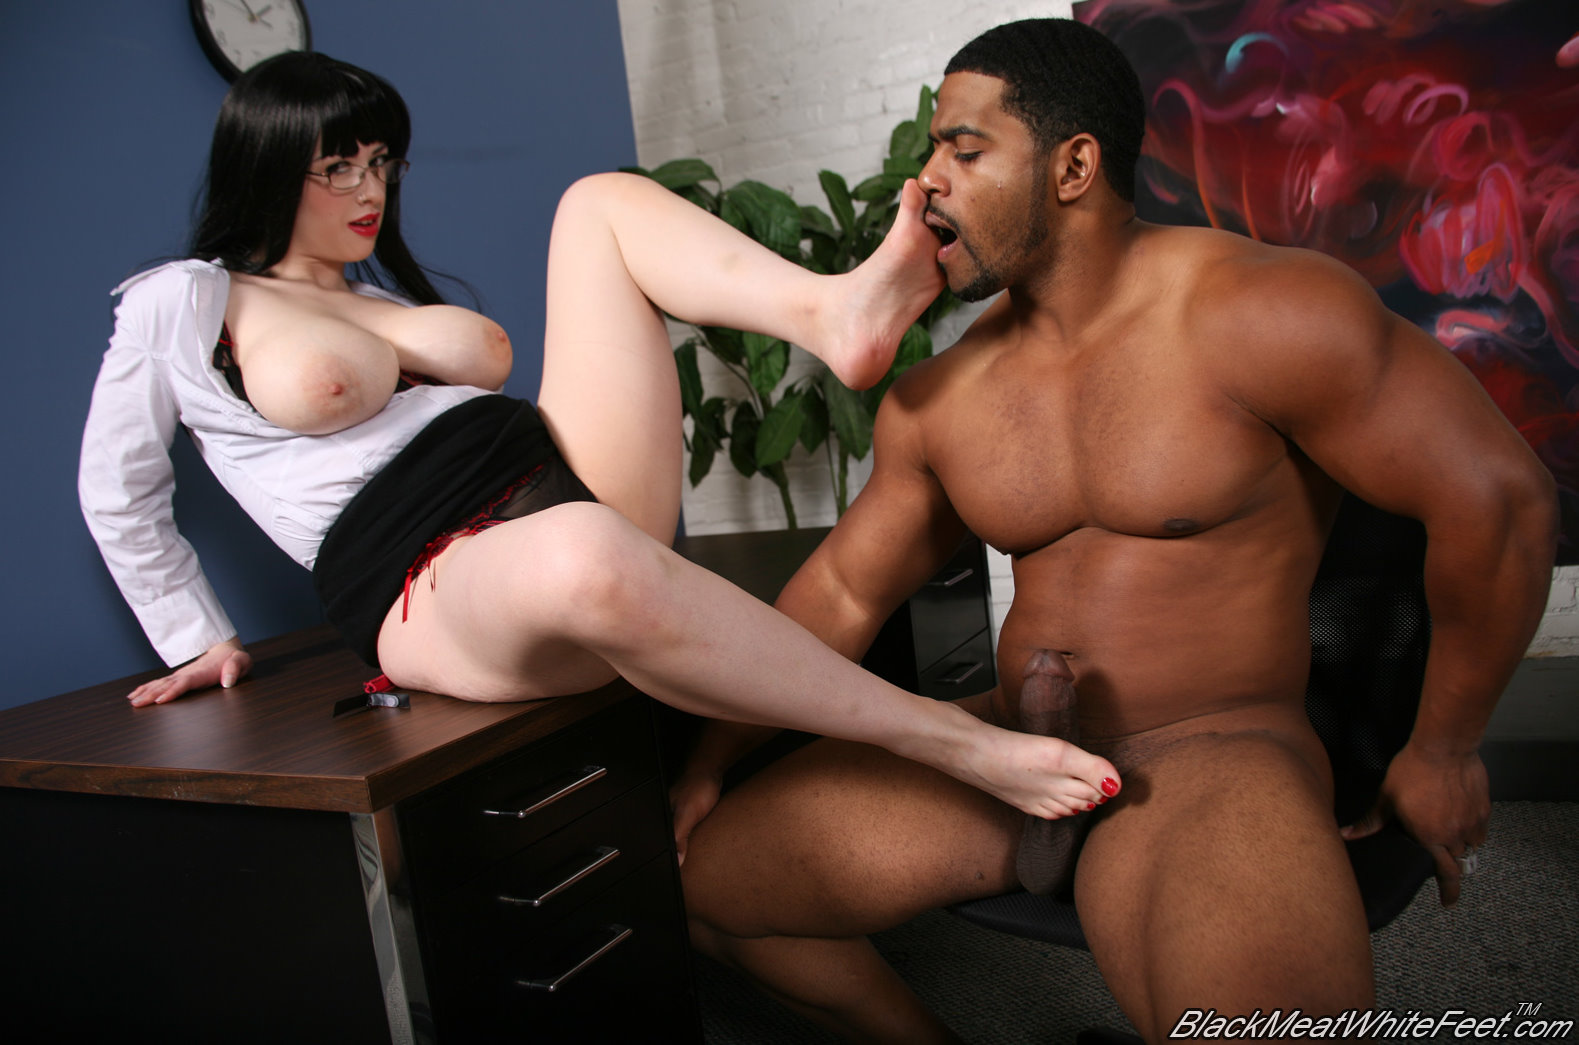 interracial-footjob-with-larkin-love